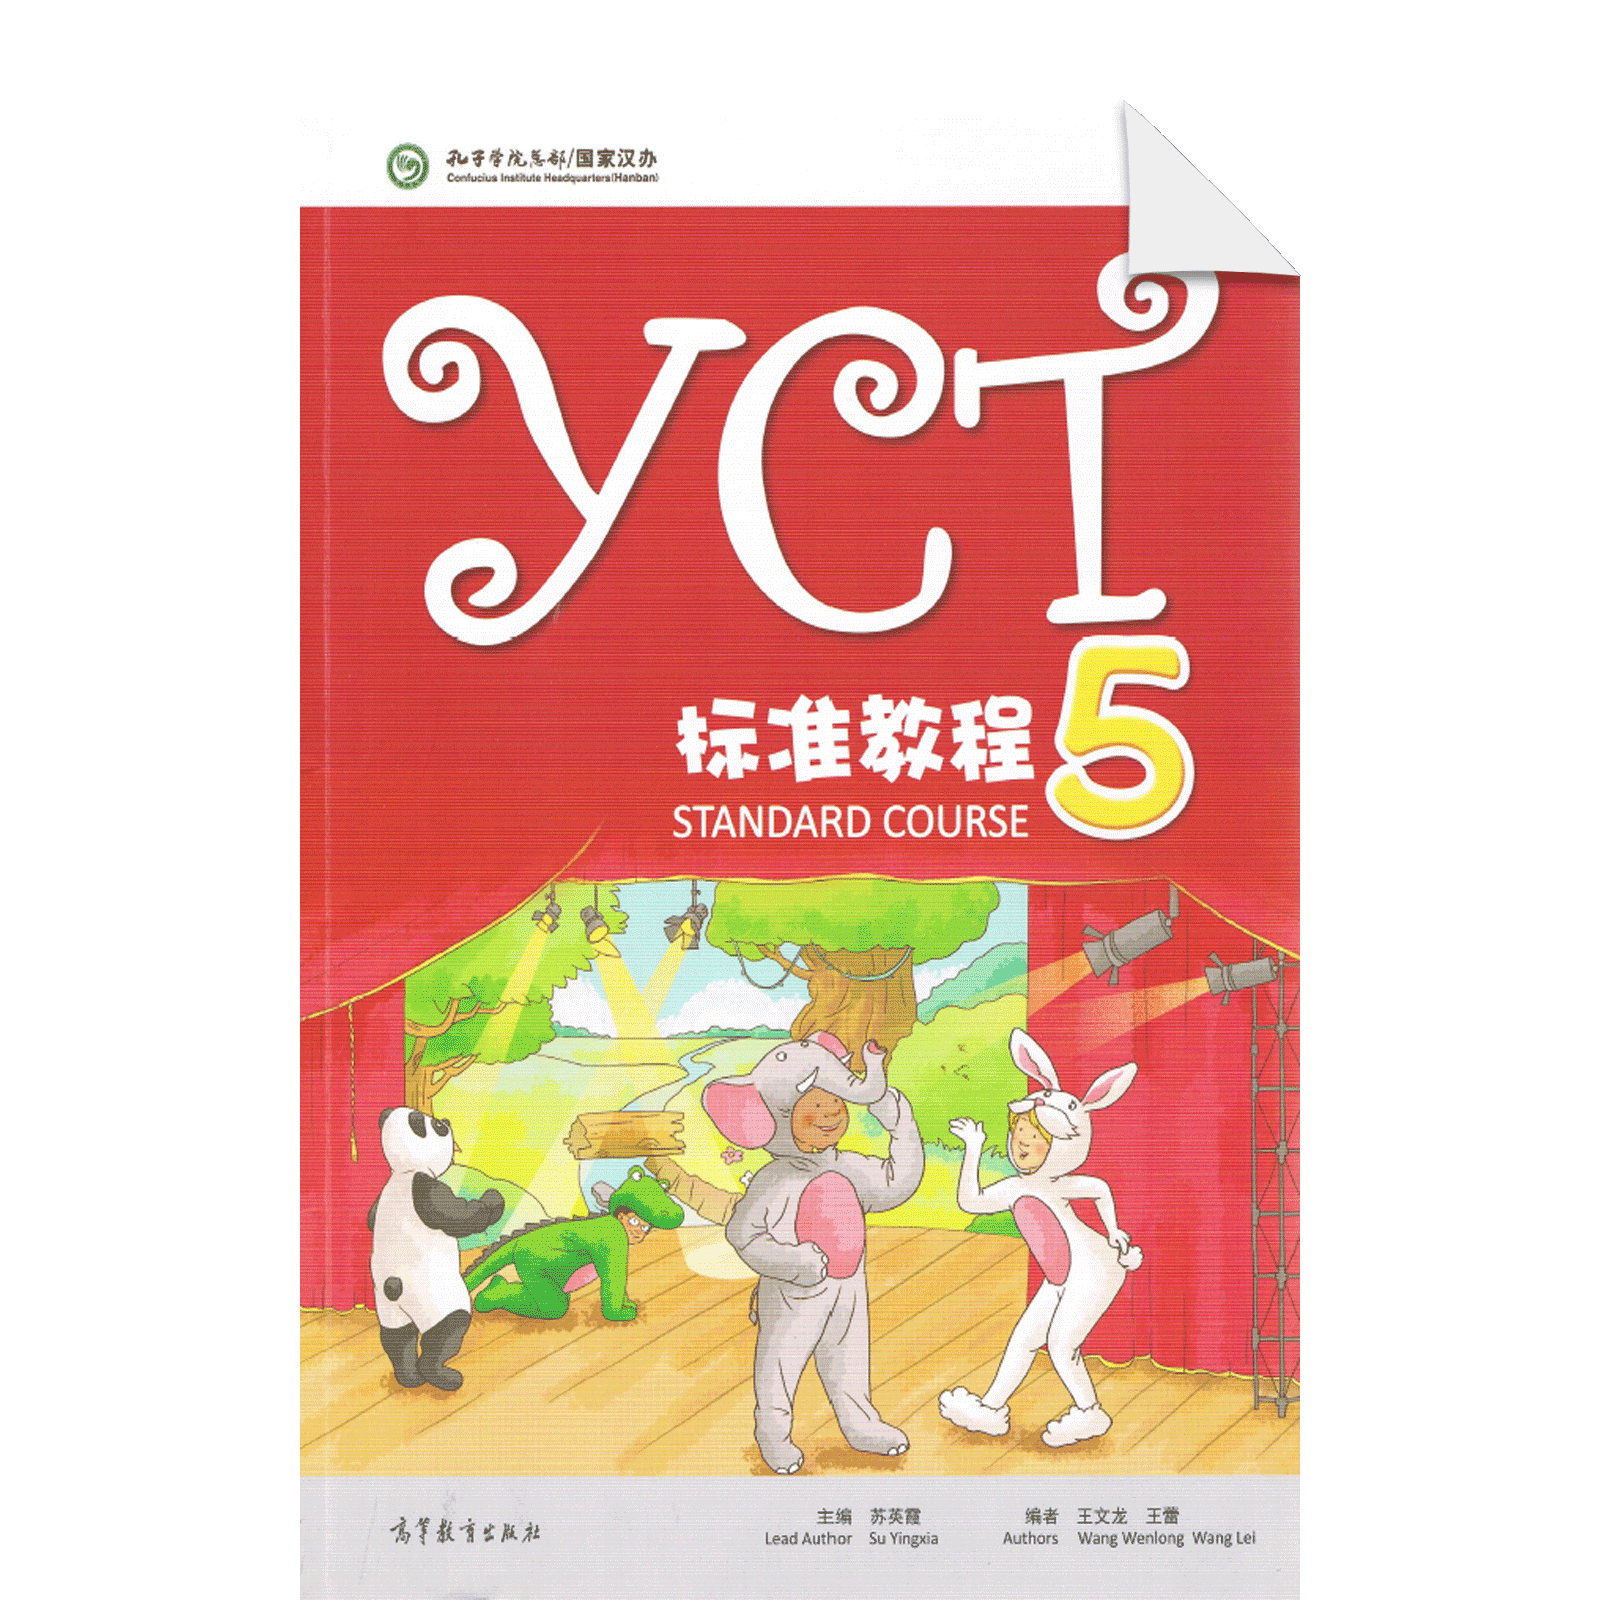 Yct5 Standard Course